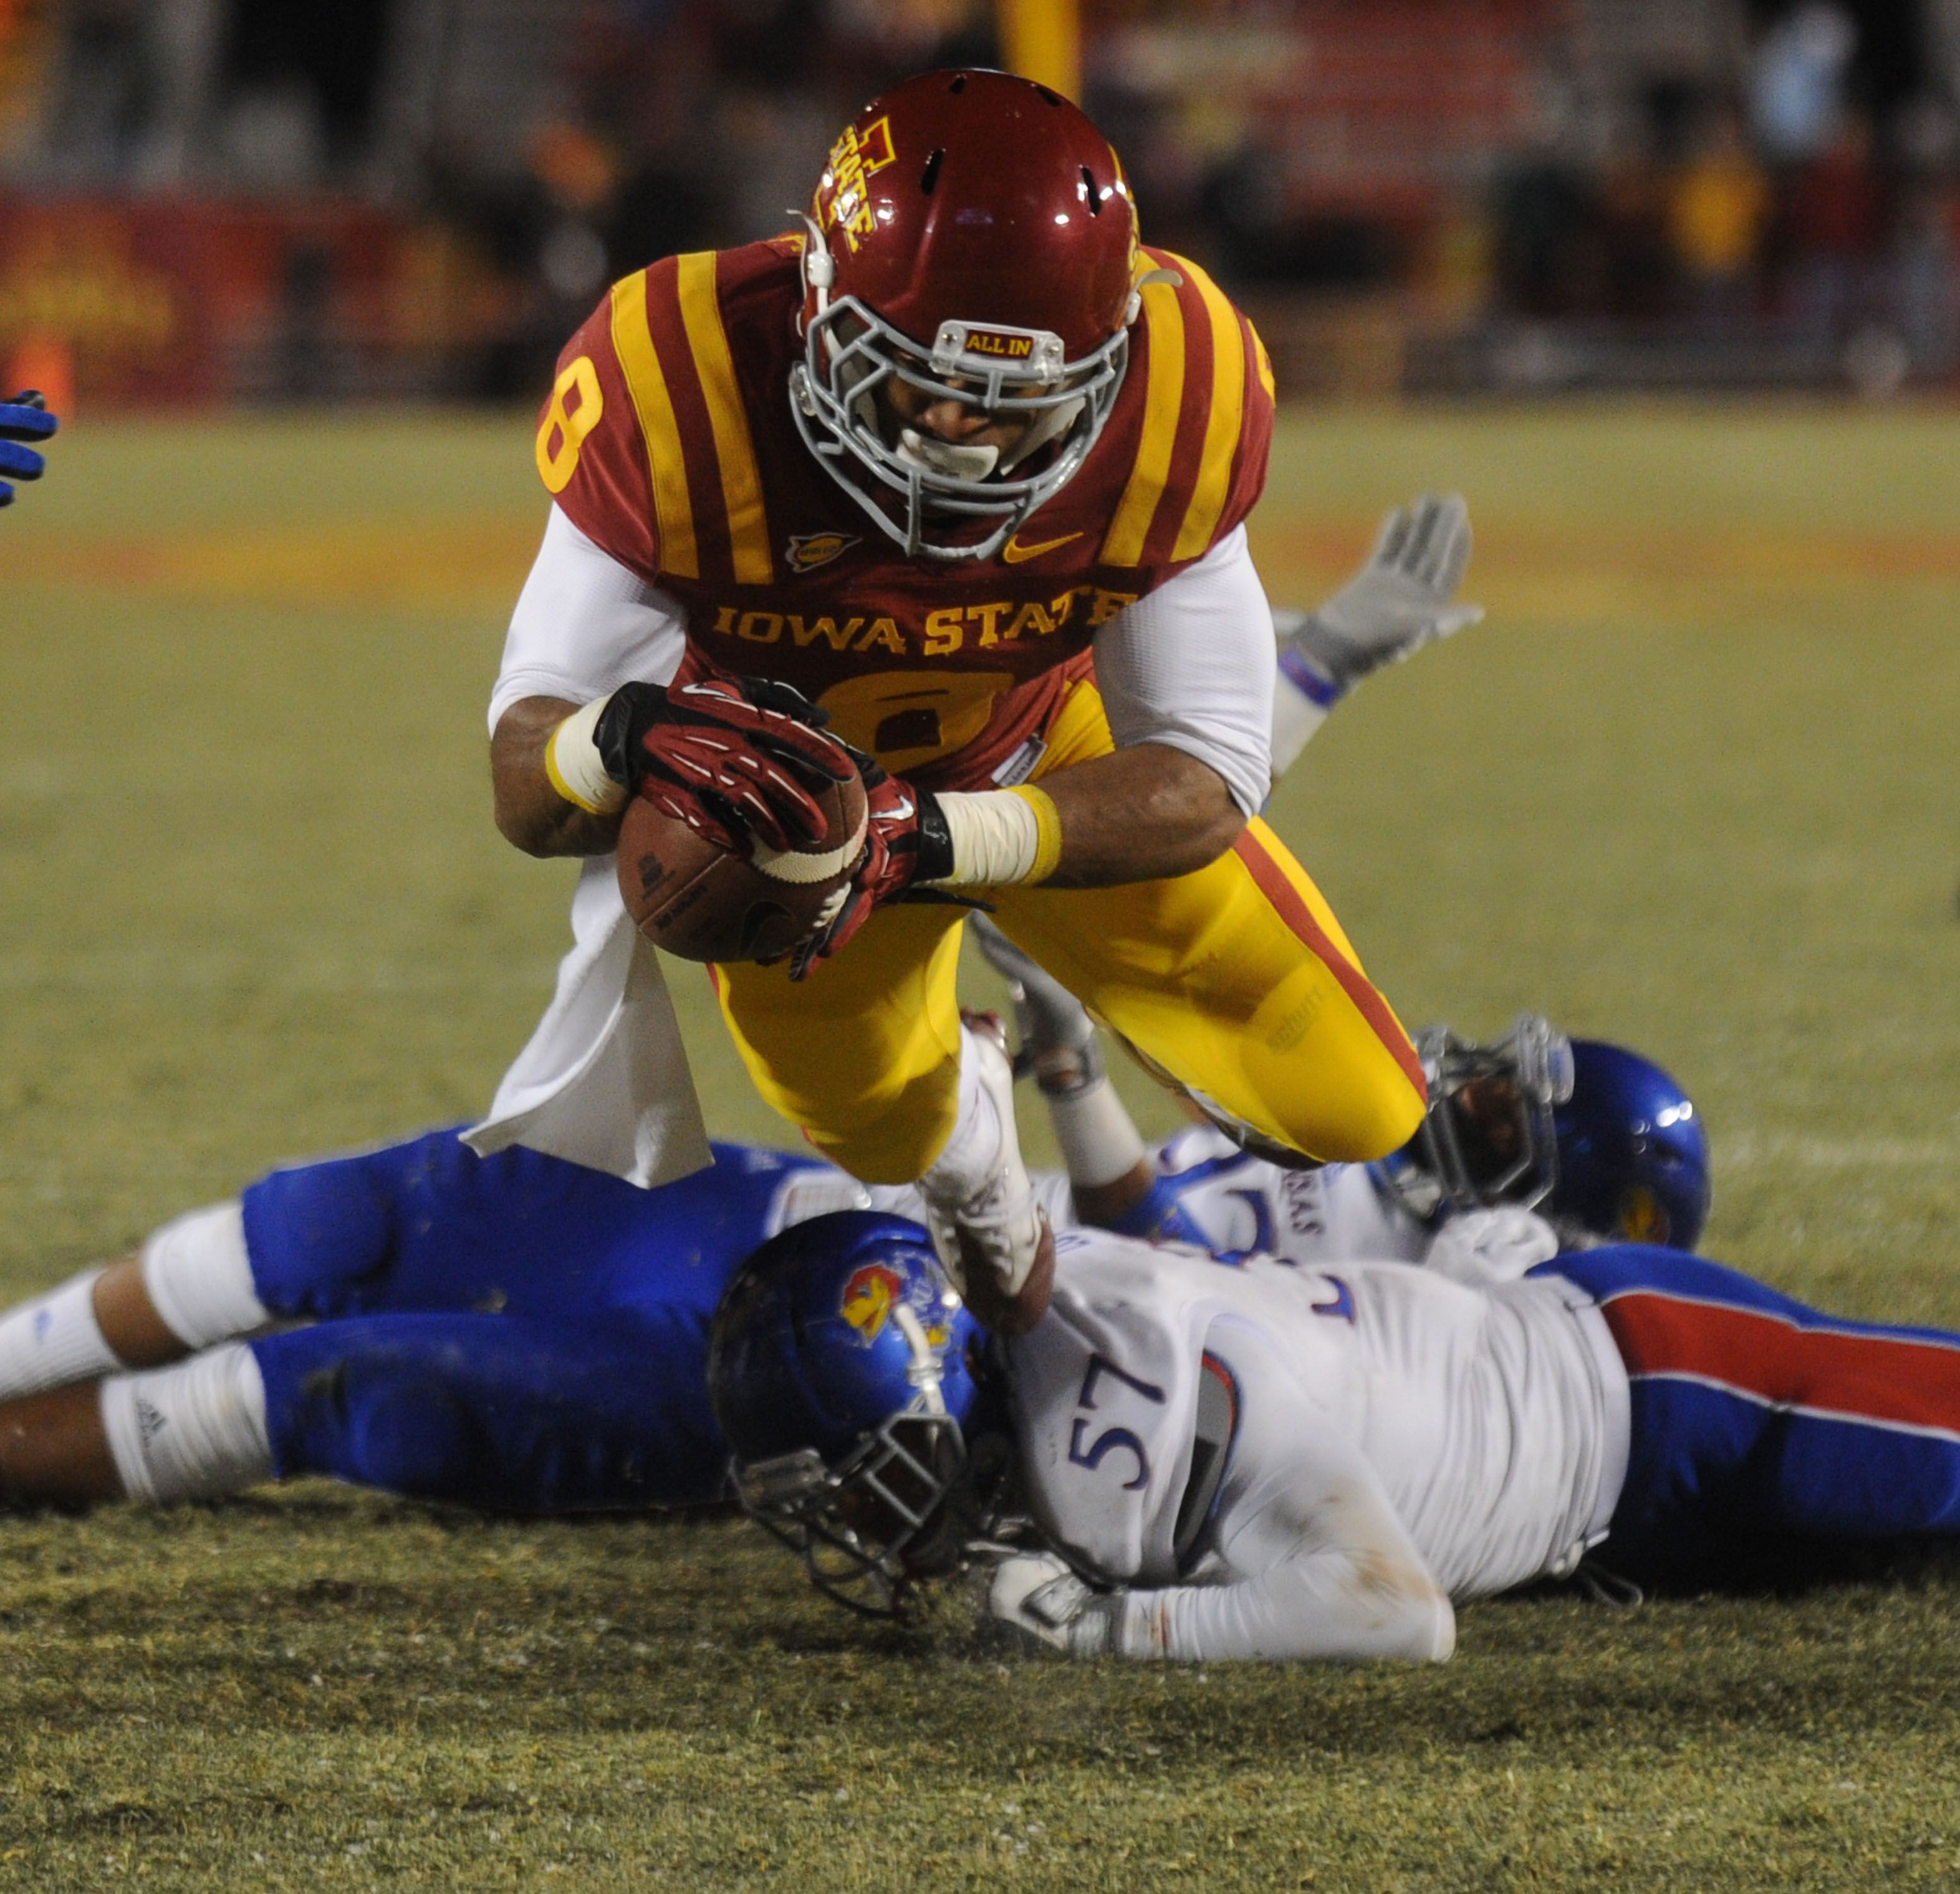 Iowa State Running Back James White Drives For A Touchdown Over